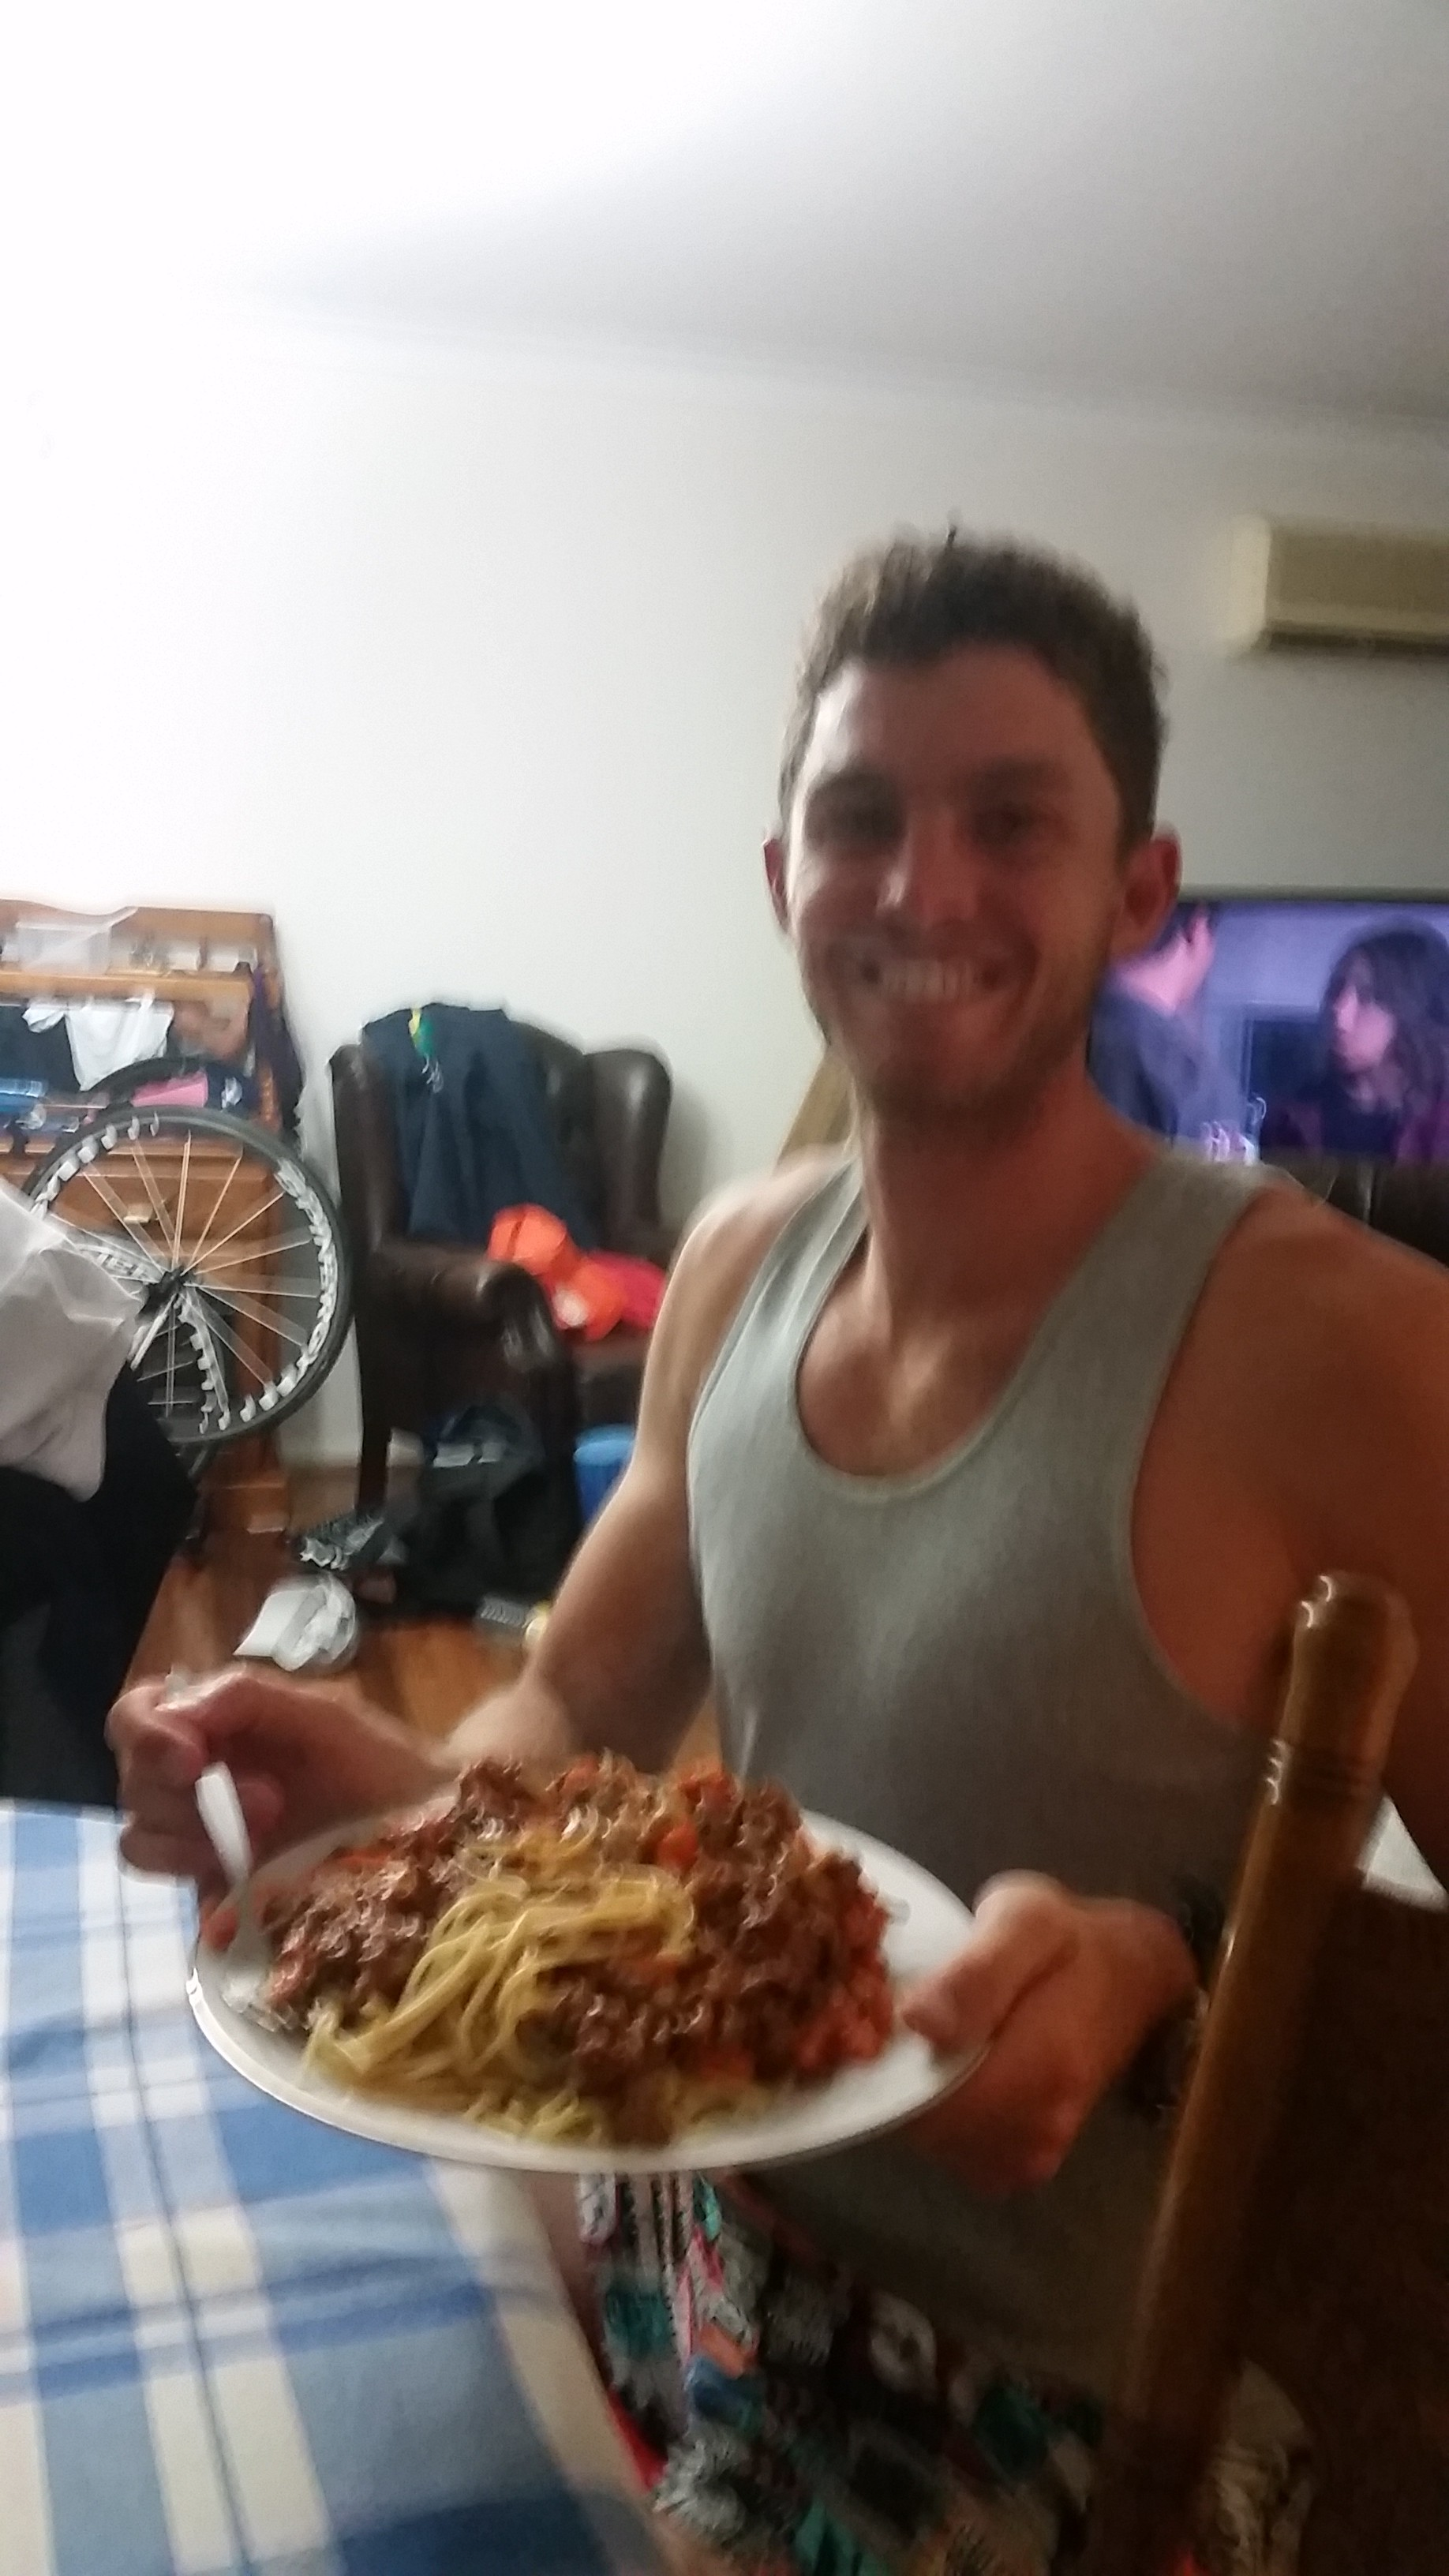 To finish this post, Mitch very happy with his dinner